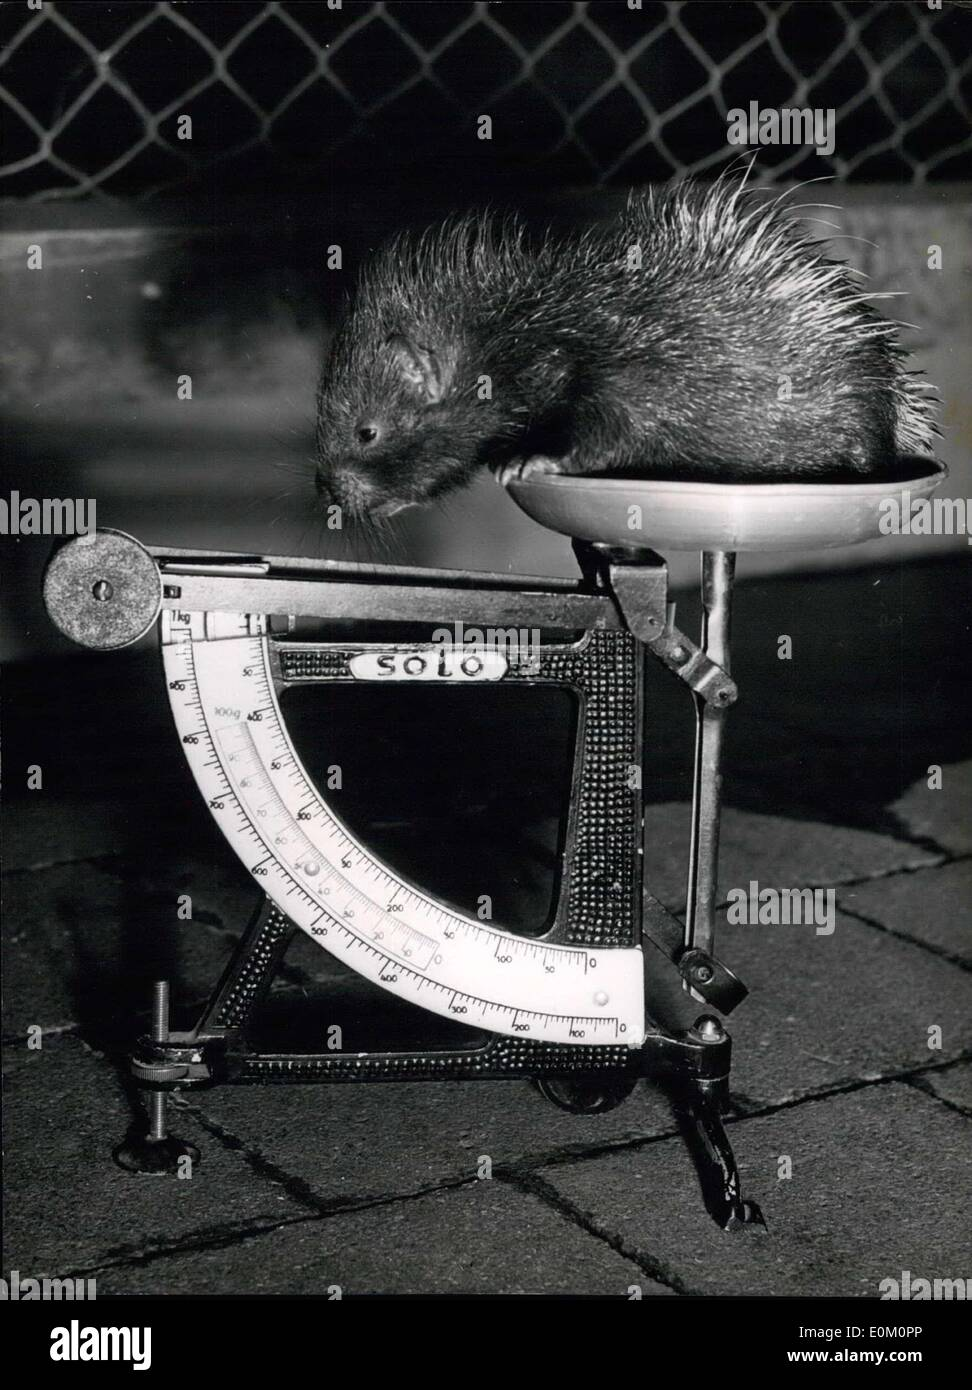 Feb. 17, 1953 - 480 grams with quills! : This is quite good weight for a newly born porcupine, Mister and Mistress ''Mystrix Gristata'' produced two young ones which were able to see everything from the very first moment and also ran about immediately after the dropping. Their names are Max and Mortiza. Here we see Max, the taller of the two young porcupines gazing at his own ''weightiness' - Stock Image